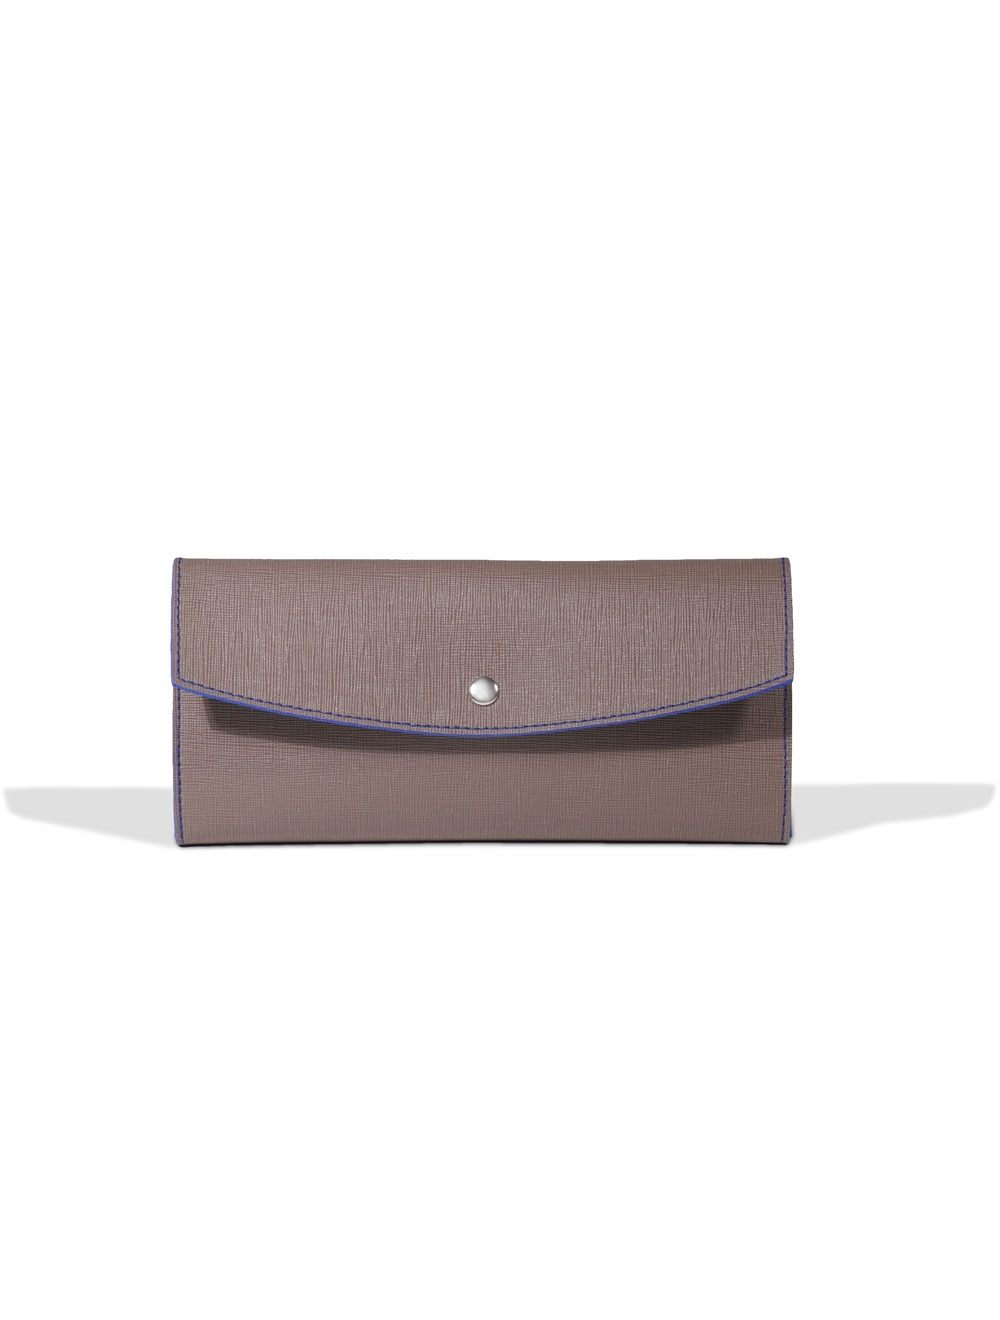 Ava Wallet - Taupe